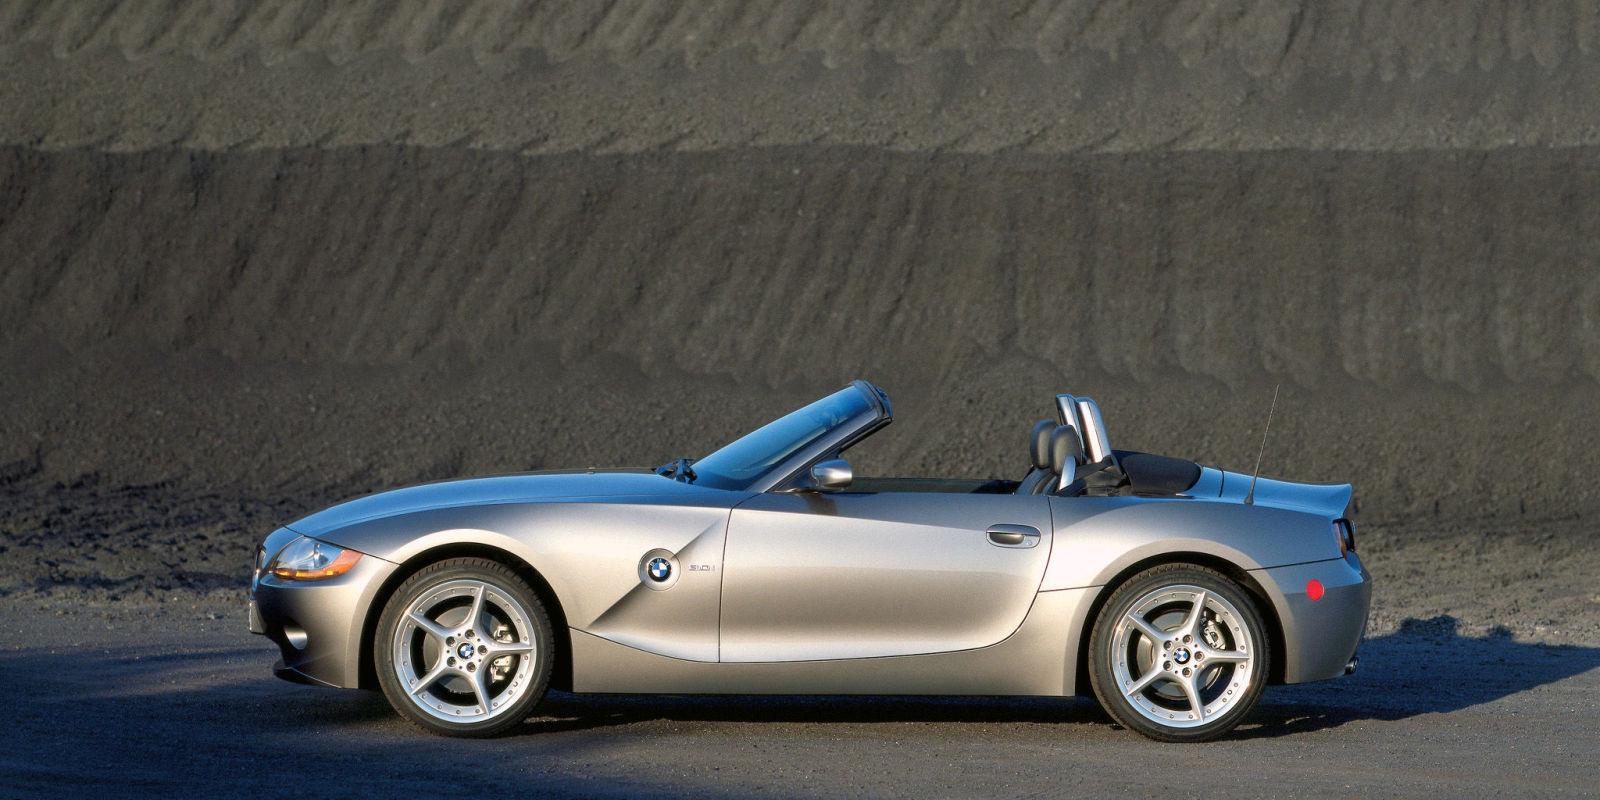 gallery-1466424936-images-bmw-z4-2002-7